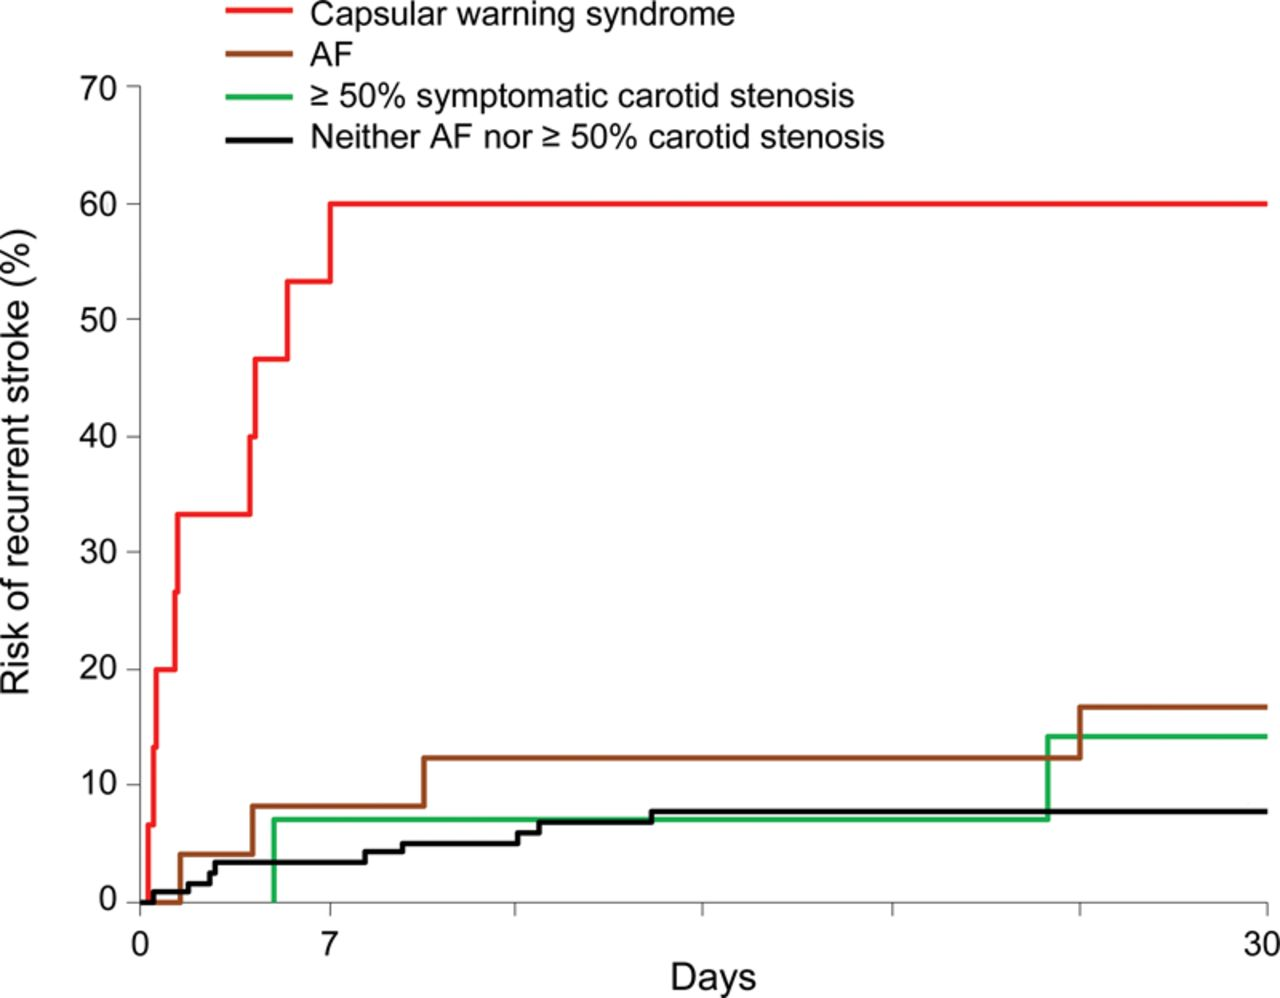 Population-based study of capsular warning syndrome and